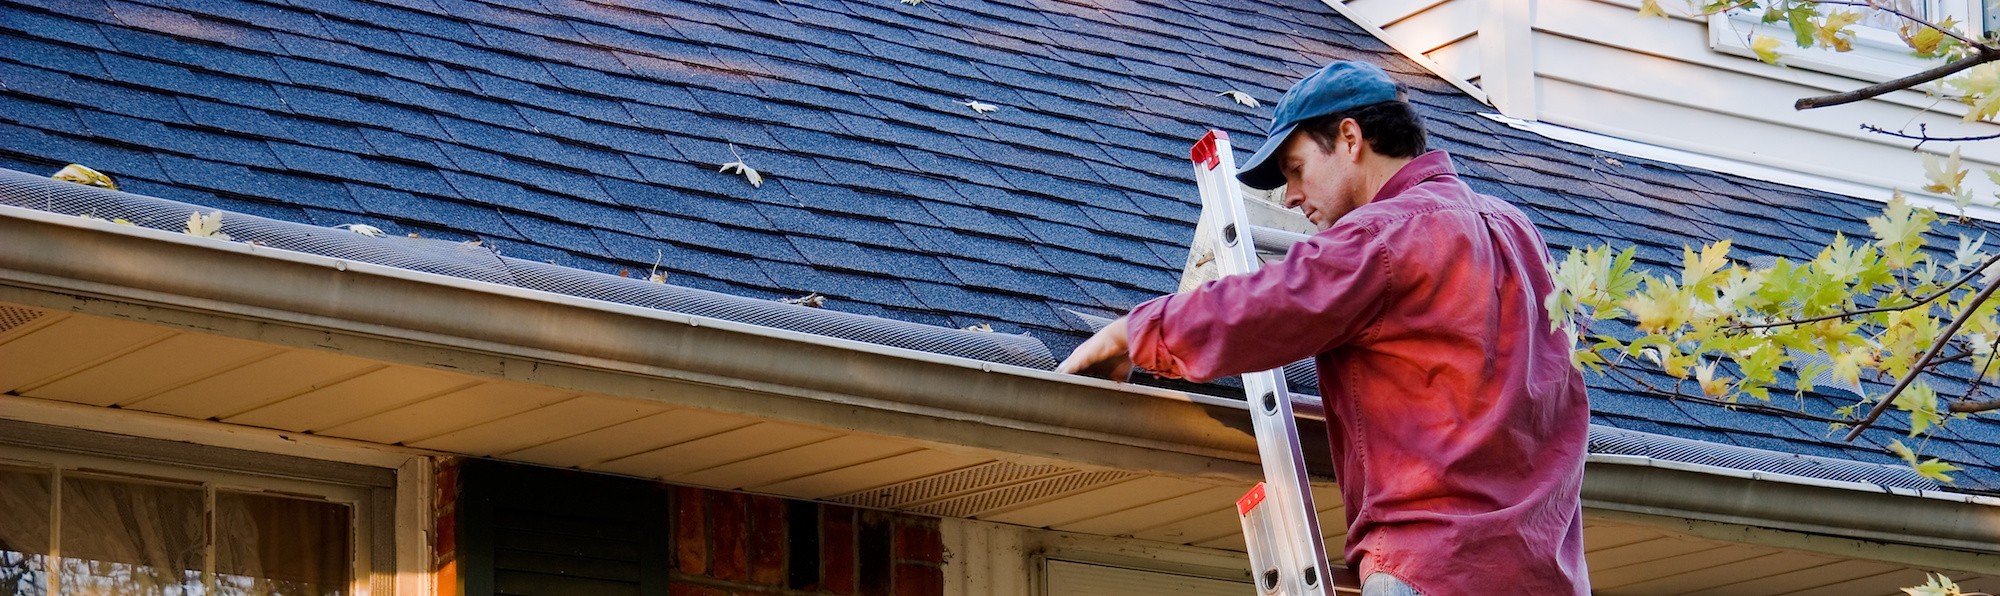 cleaning gutter service